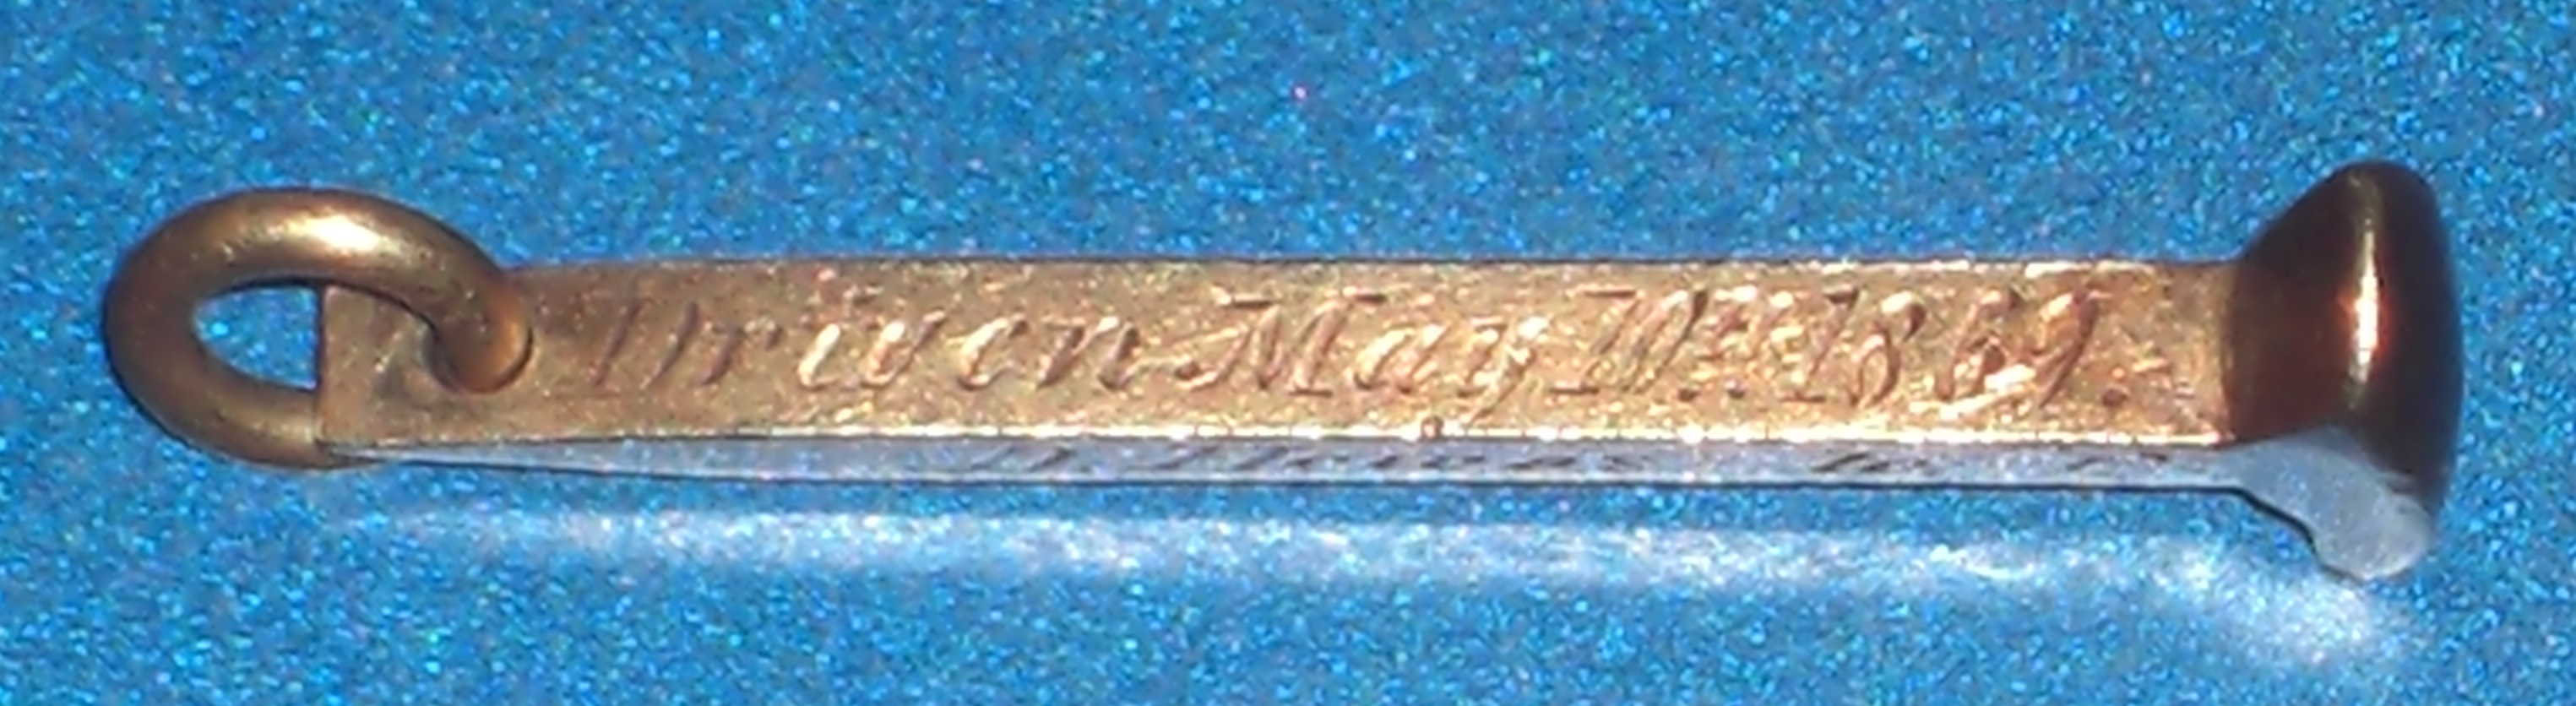 Miniature gold Spike, Courtesy of Mark W. Howe.